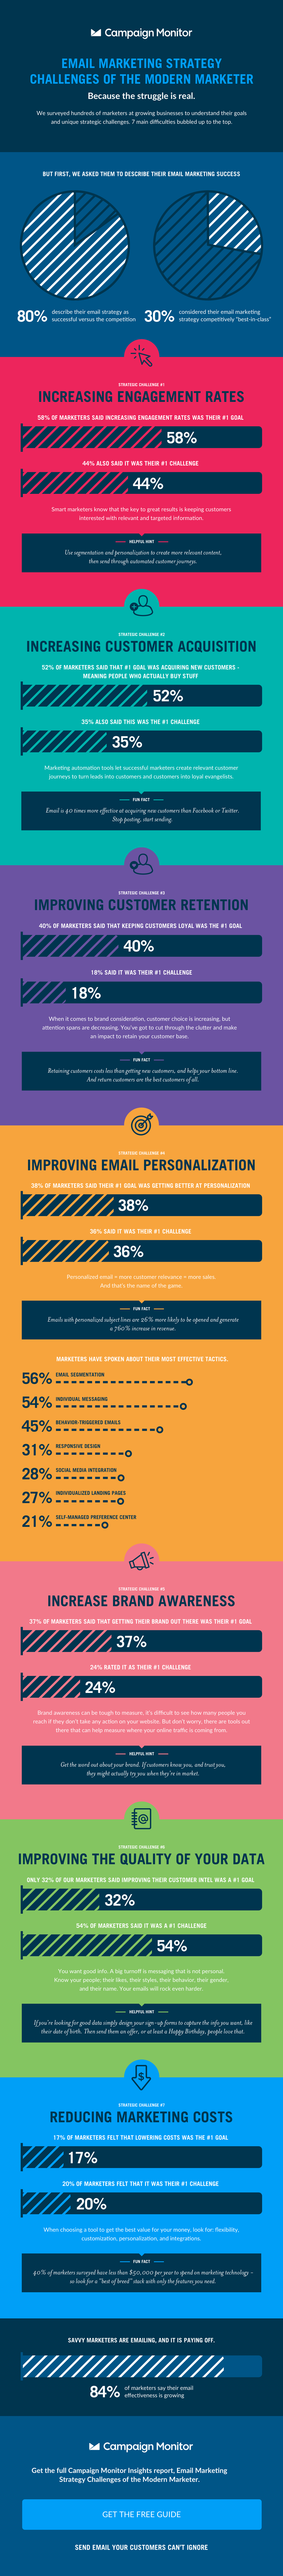 Marketing Challenges of Modern Marketers: Email Opportunities - Infographic